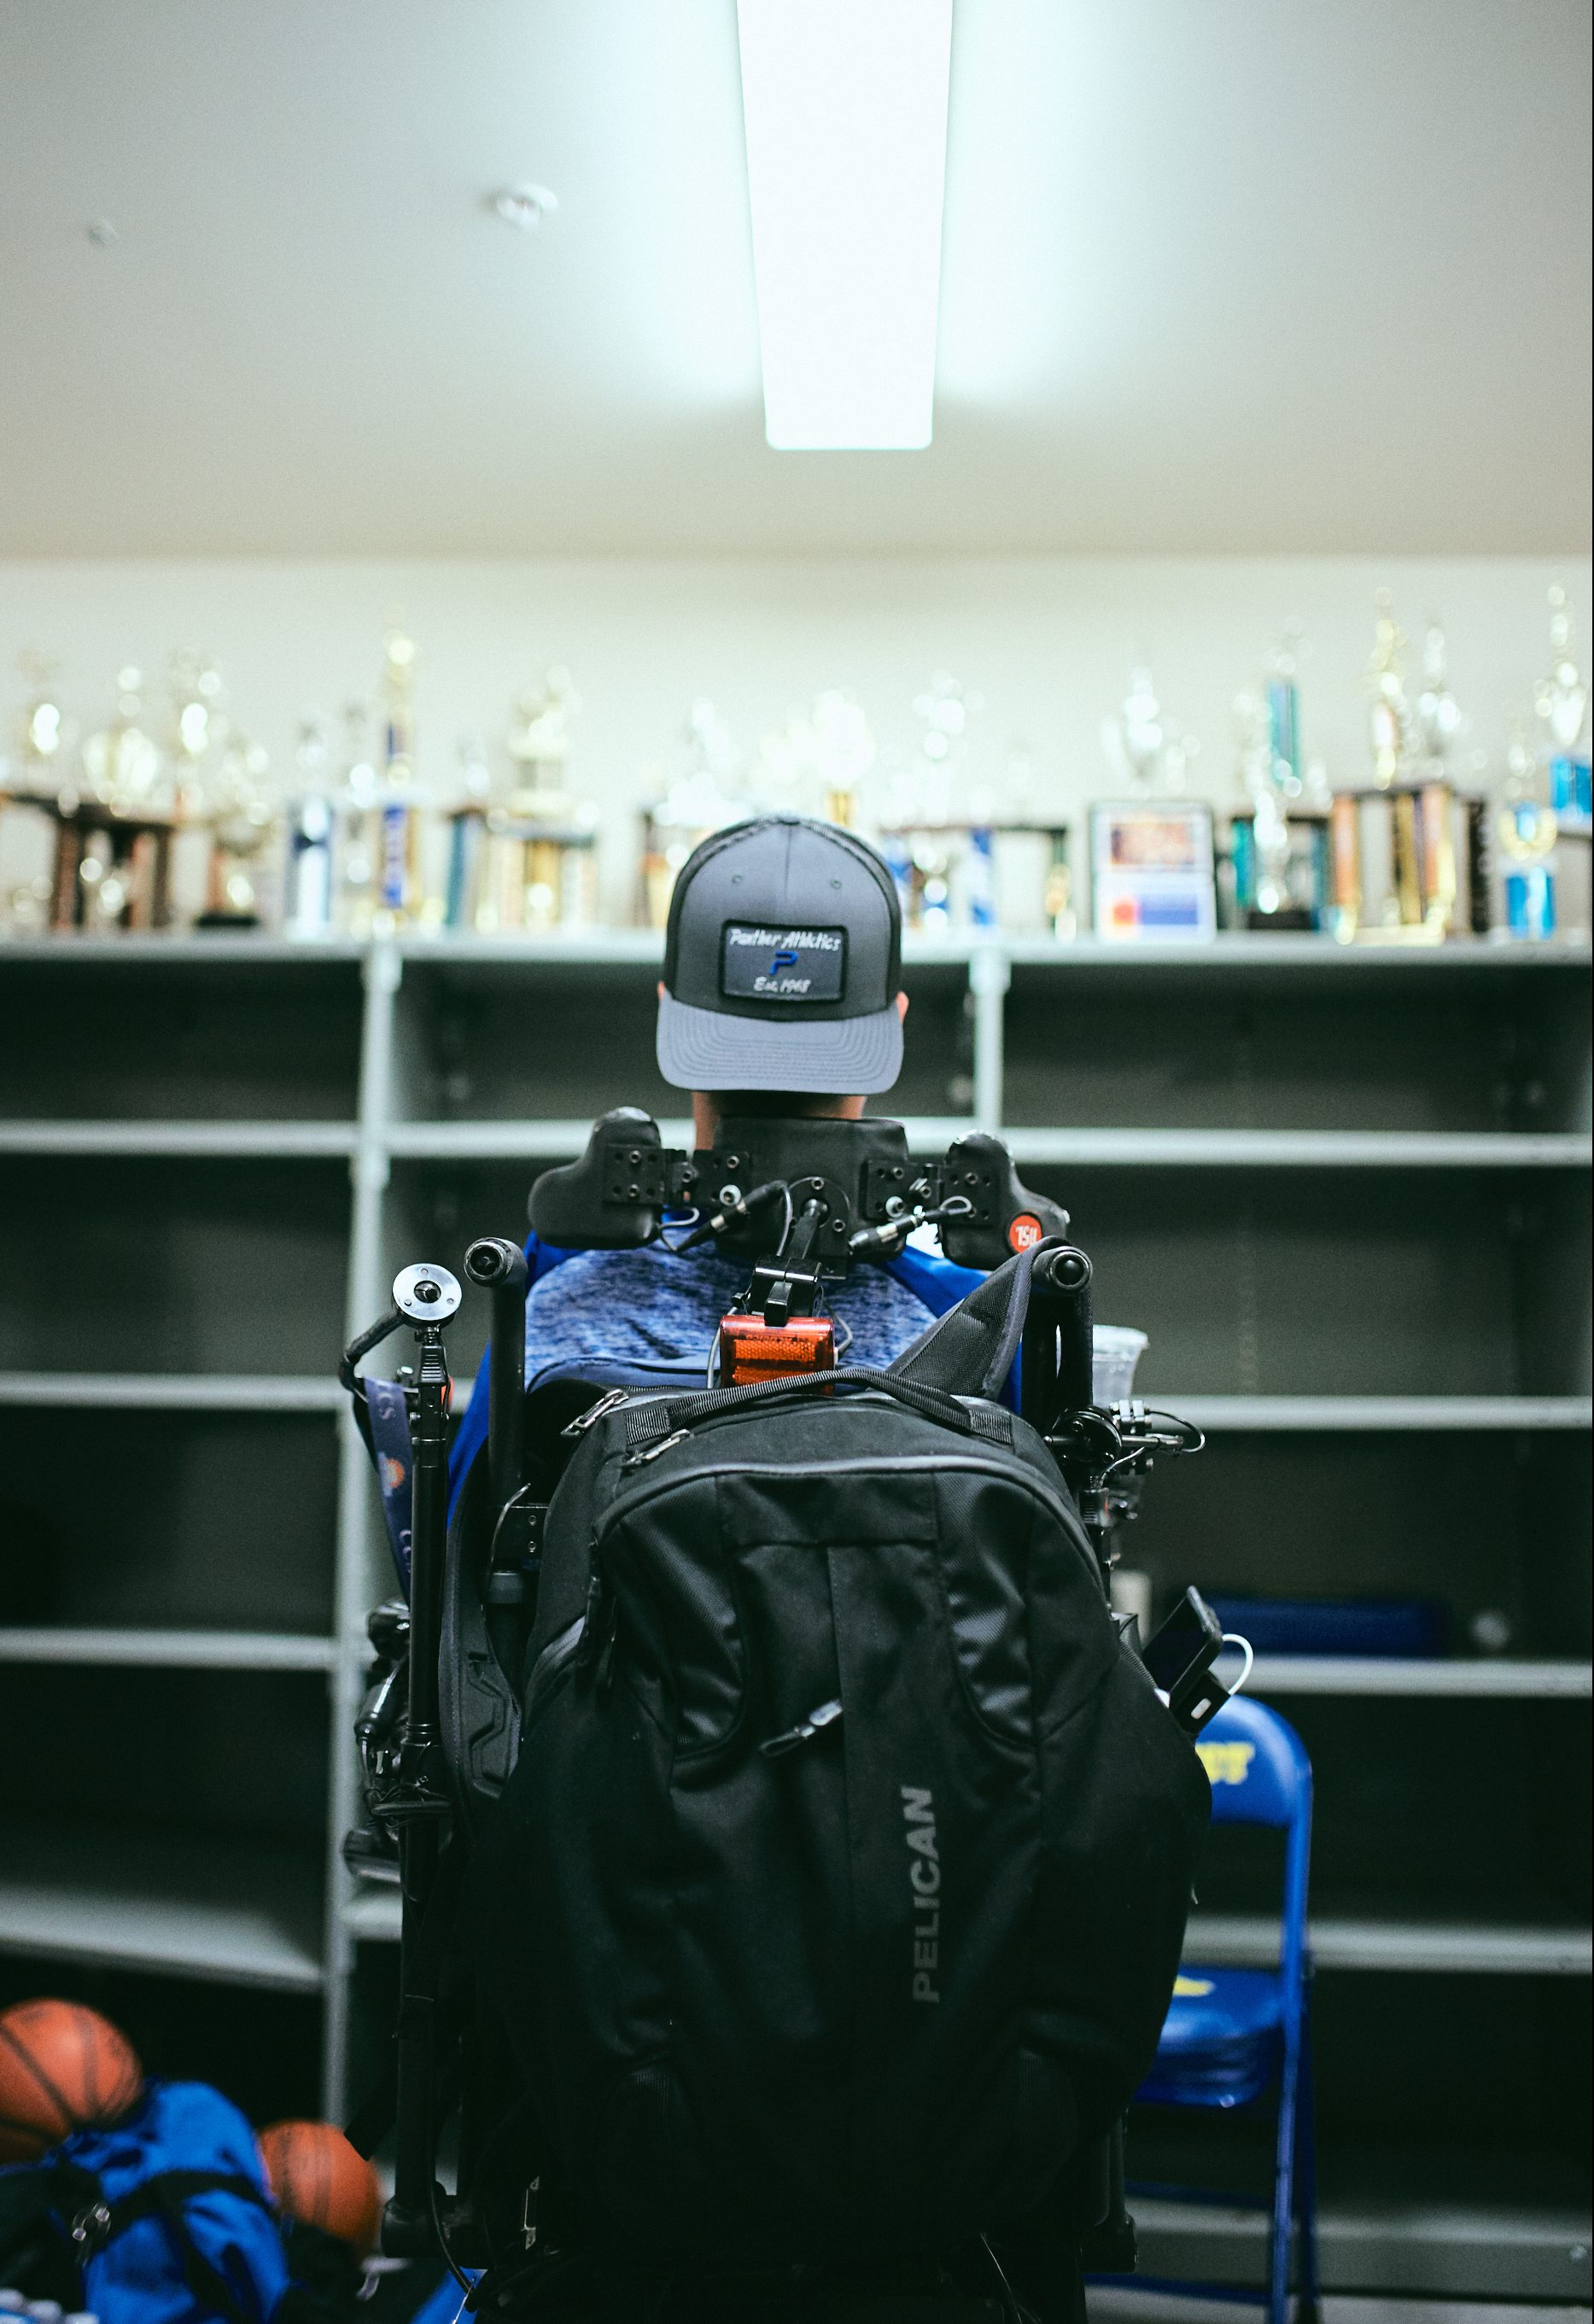 Caption: Coach Rob Mendez stares at the wall of trophies at Prospect High School in Saragota, California.